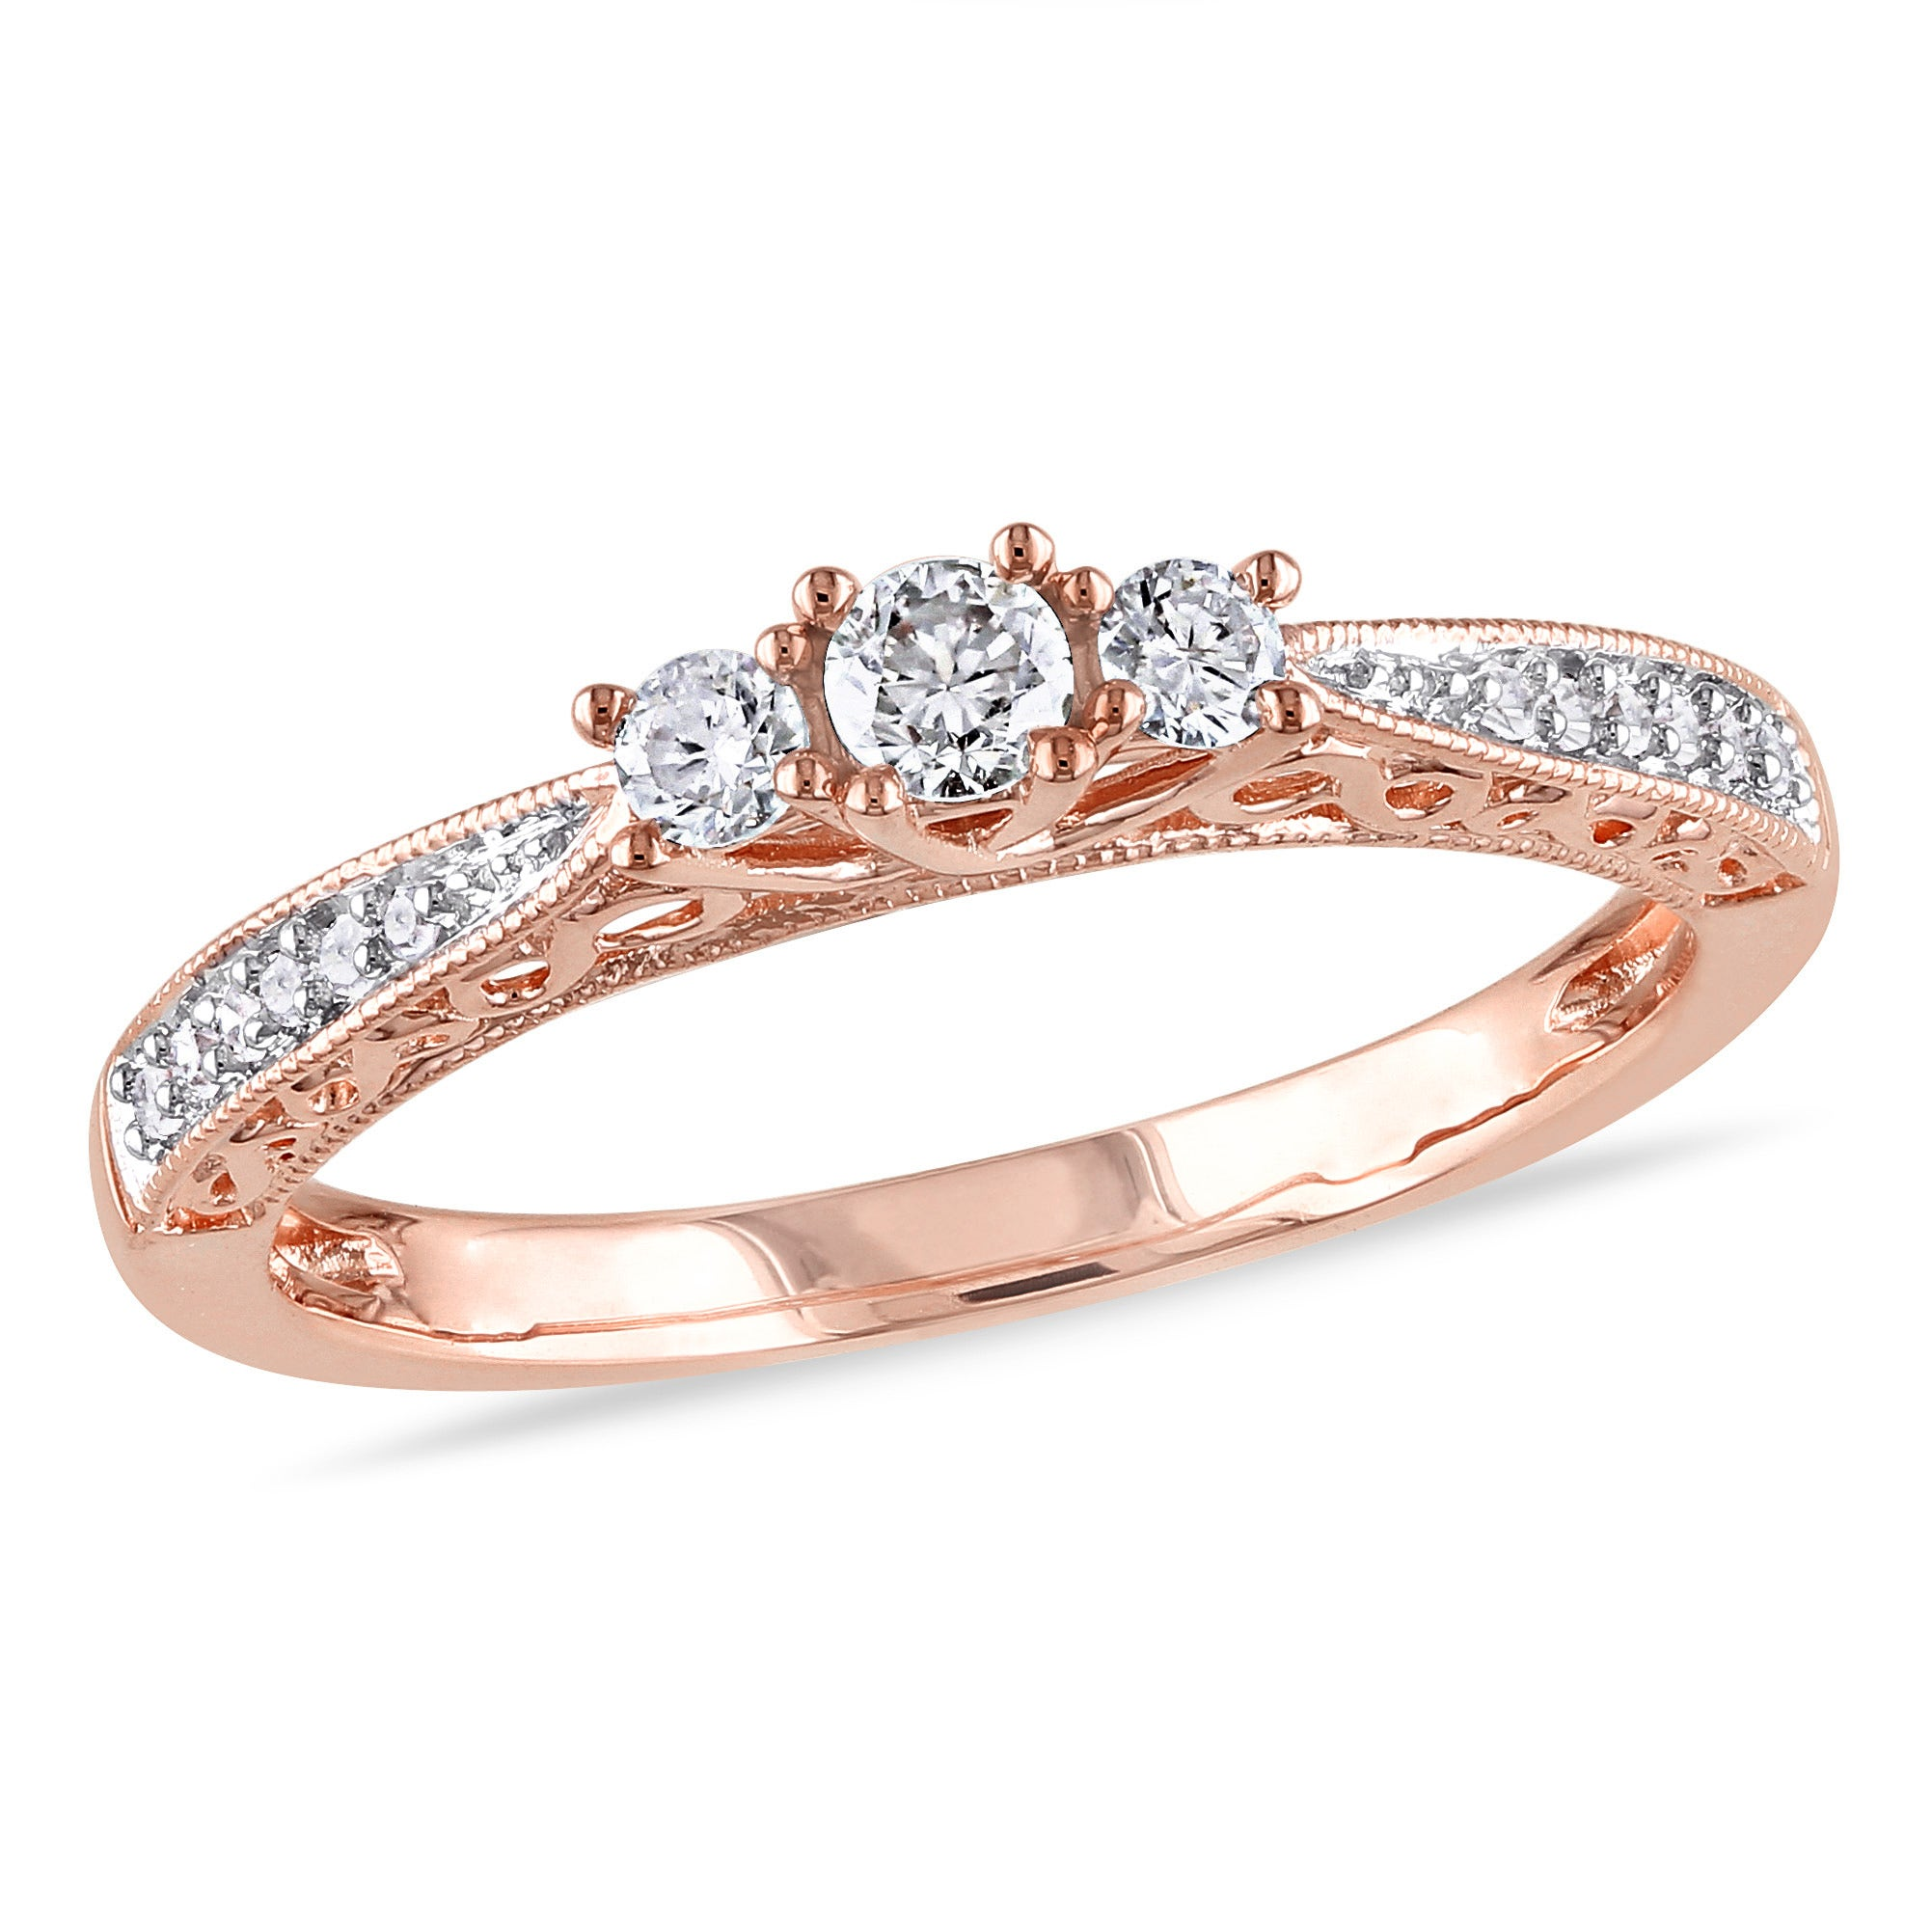 3 Diamond Promise Ring in 14K Pink Gold 1//10 cttw, Size-3.5 G-H,I2-I3